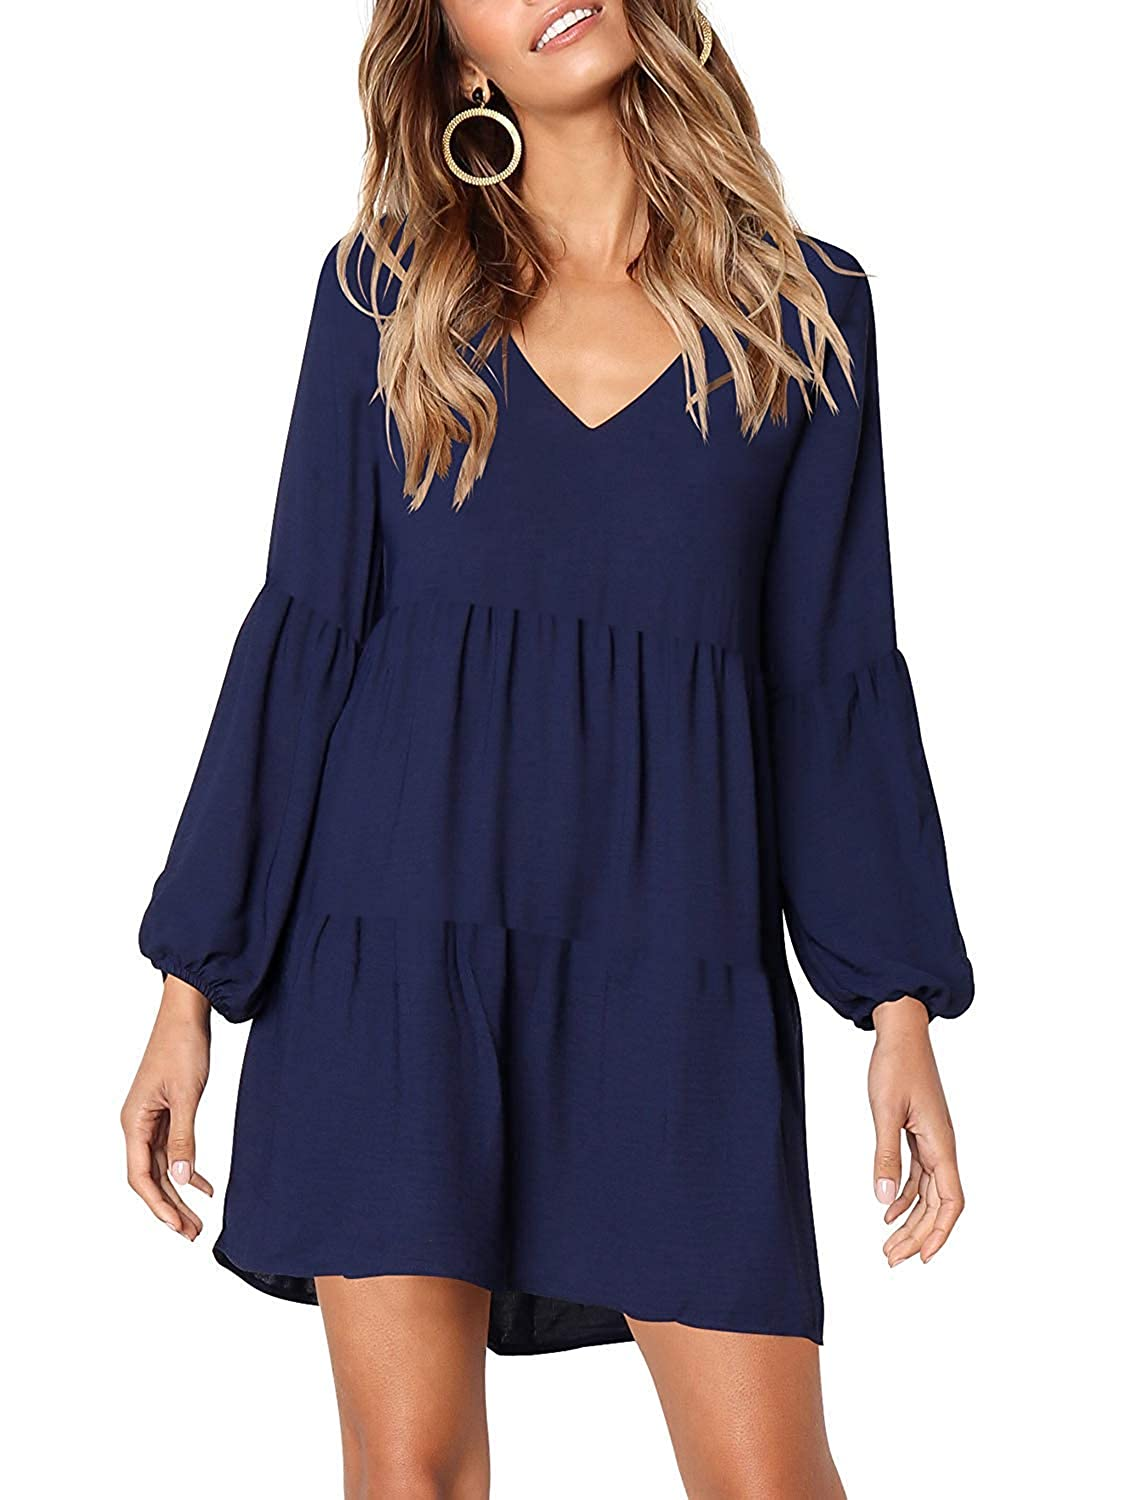 Classic Navy Queenie Visconti 3 4 Sleeves color Block Casual Dresses for Women Fall Clothes